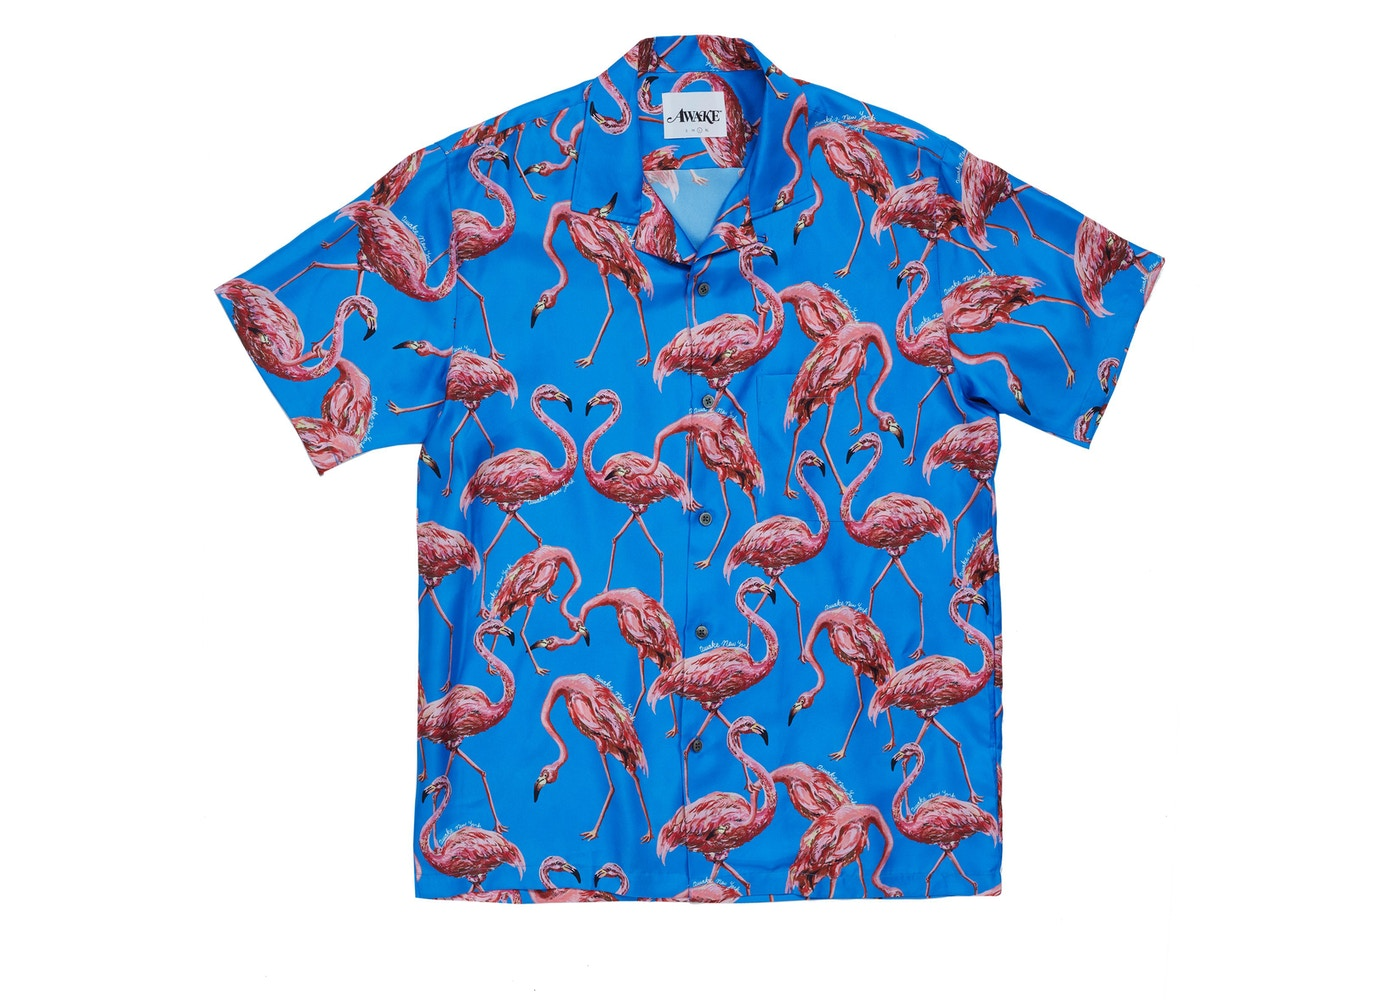 c95f22fe32 Awake Silk Flamingo Print Camp Shirt Blue